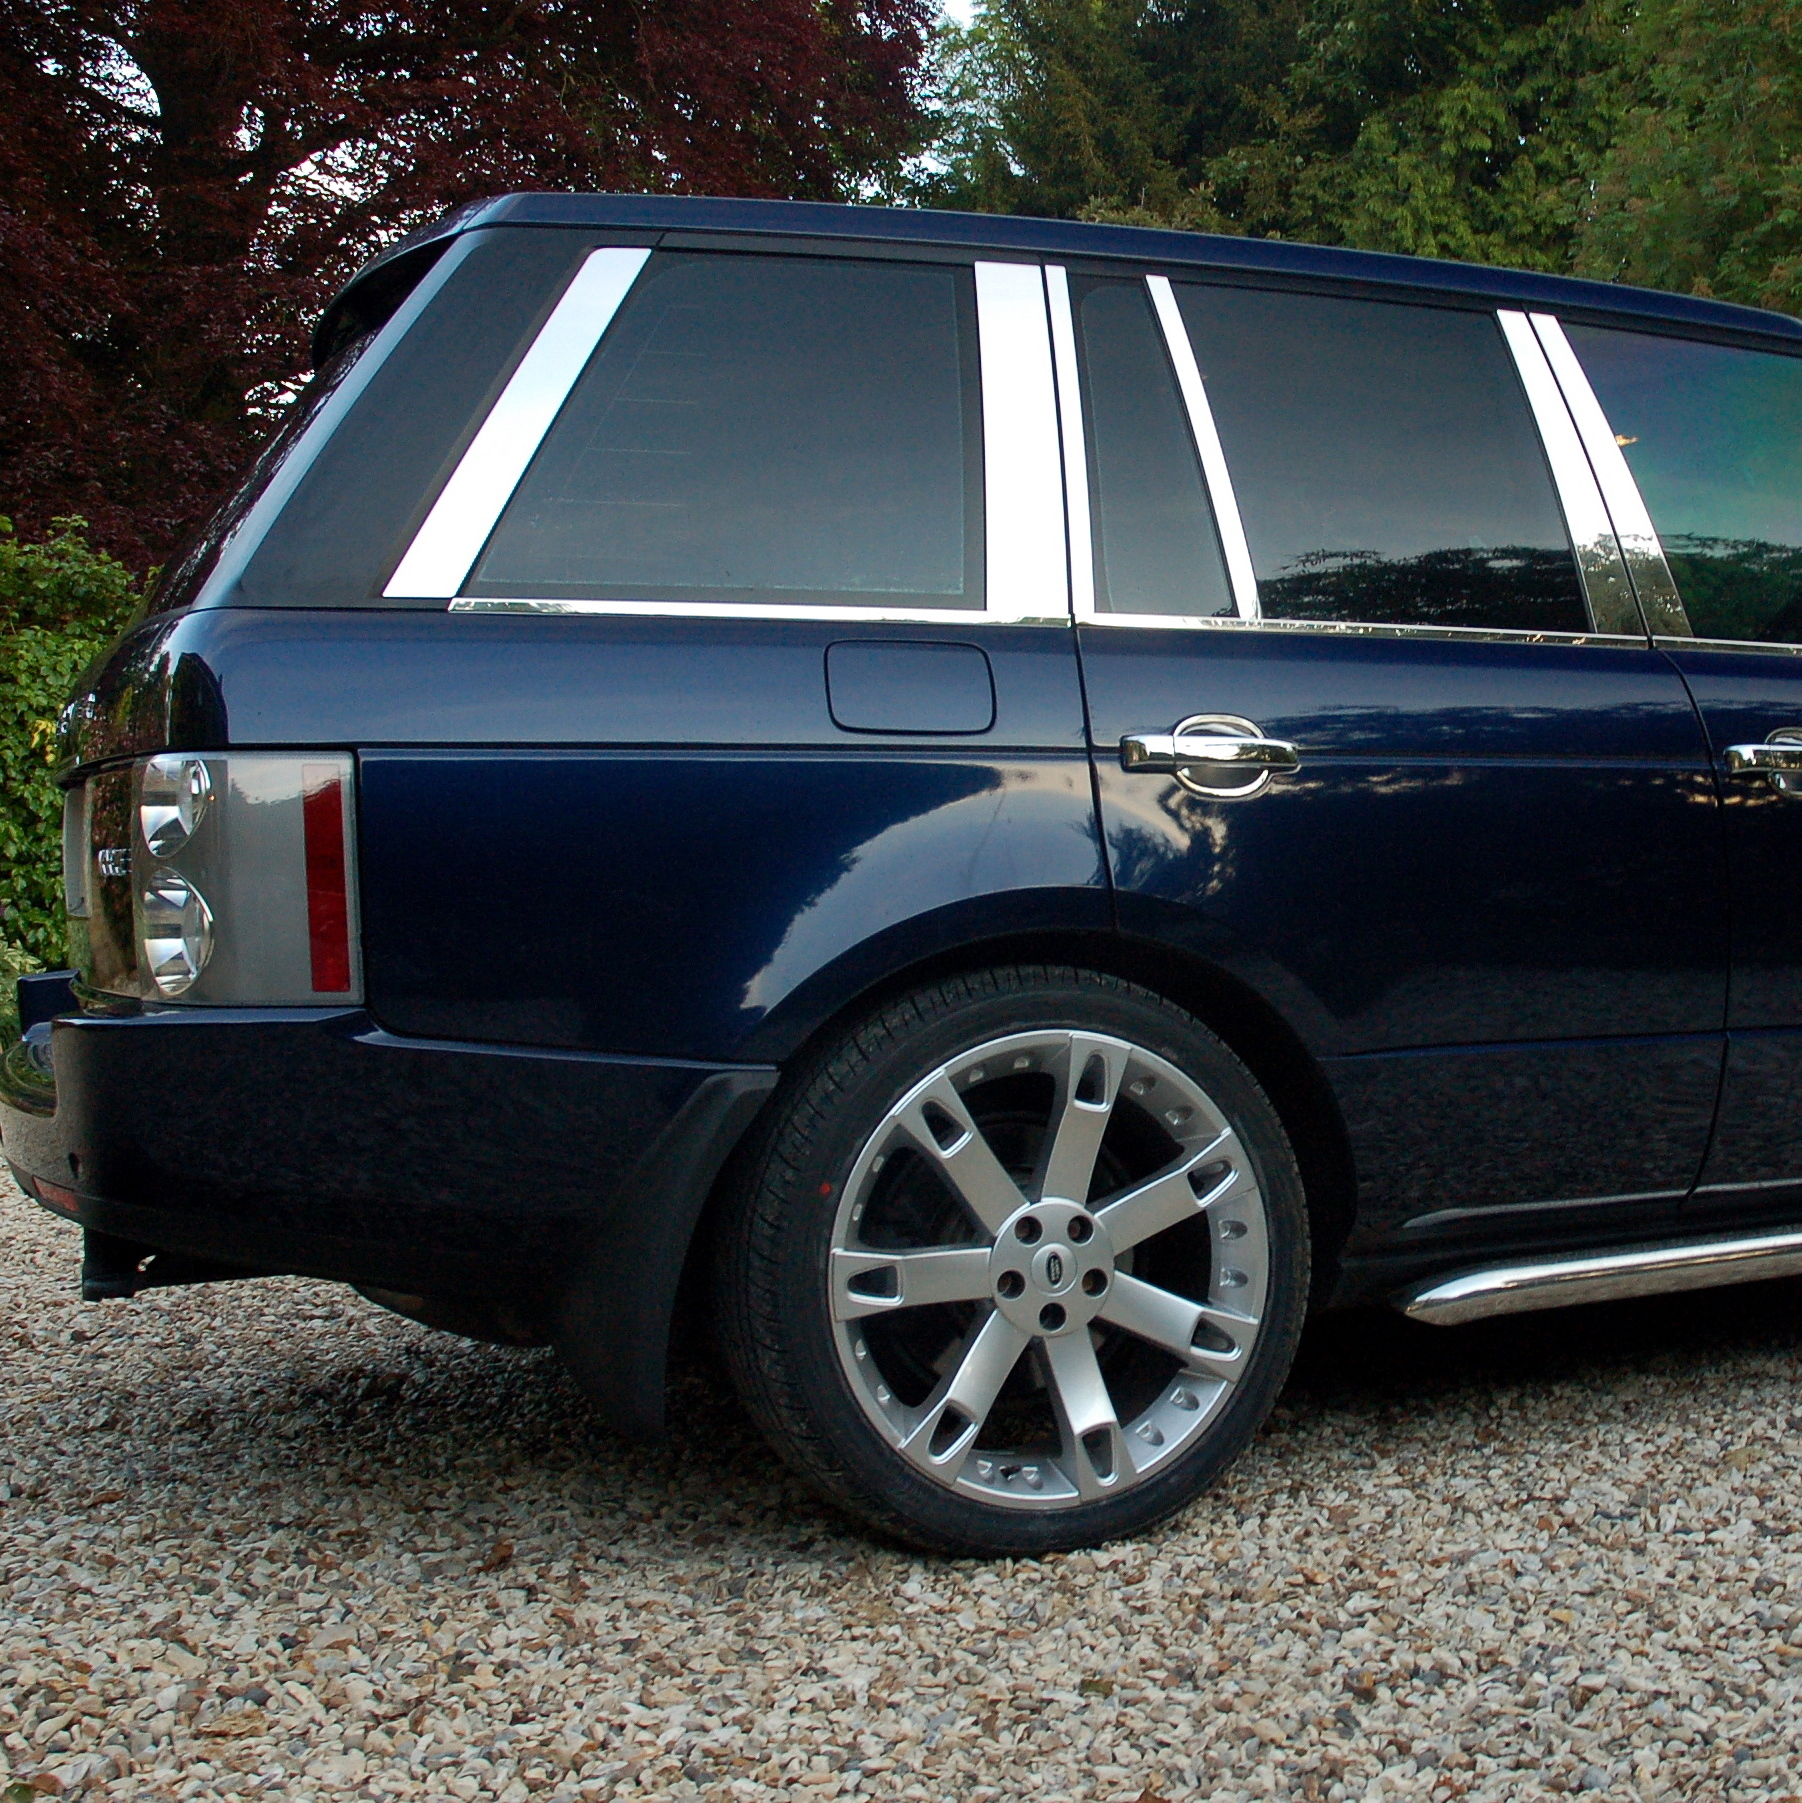 Land Rover Parts For Sale: Chrome B C D PILLAR COVERS 12pc Kit For Range Rover L322